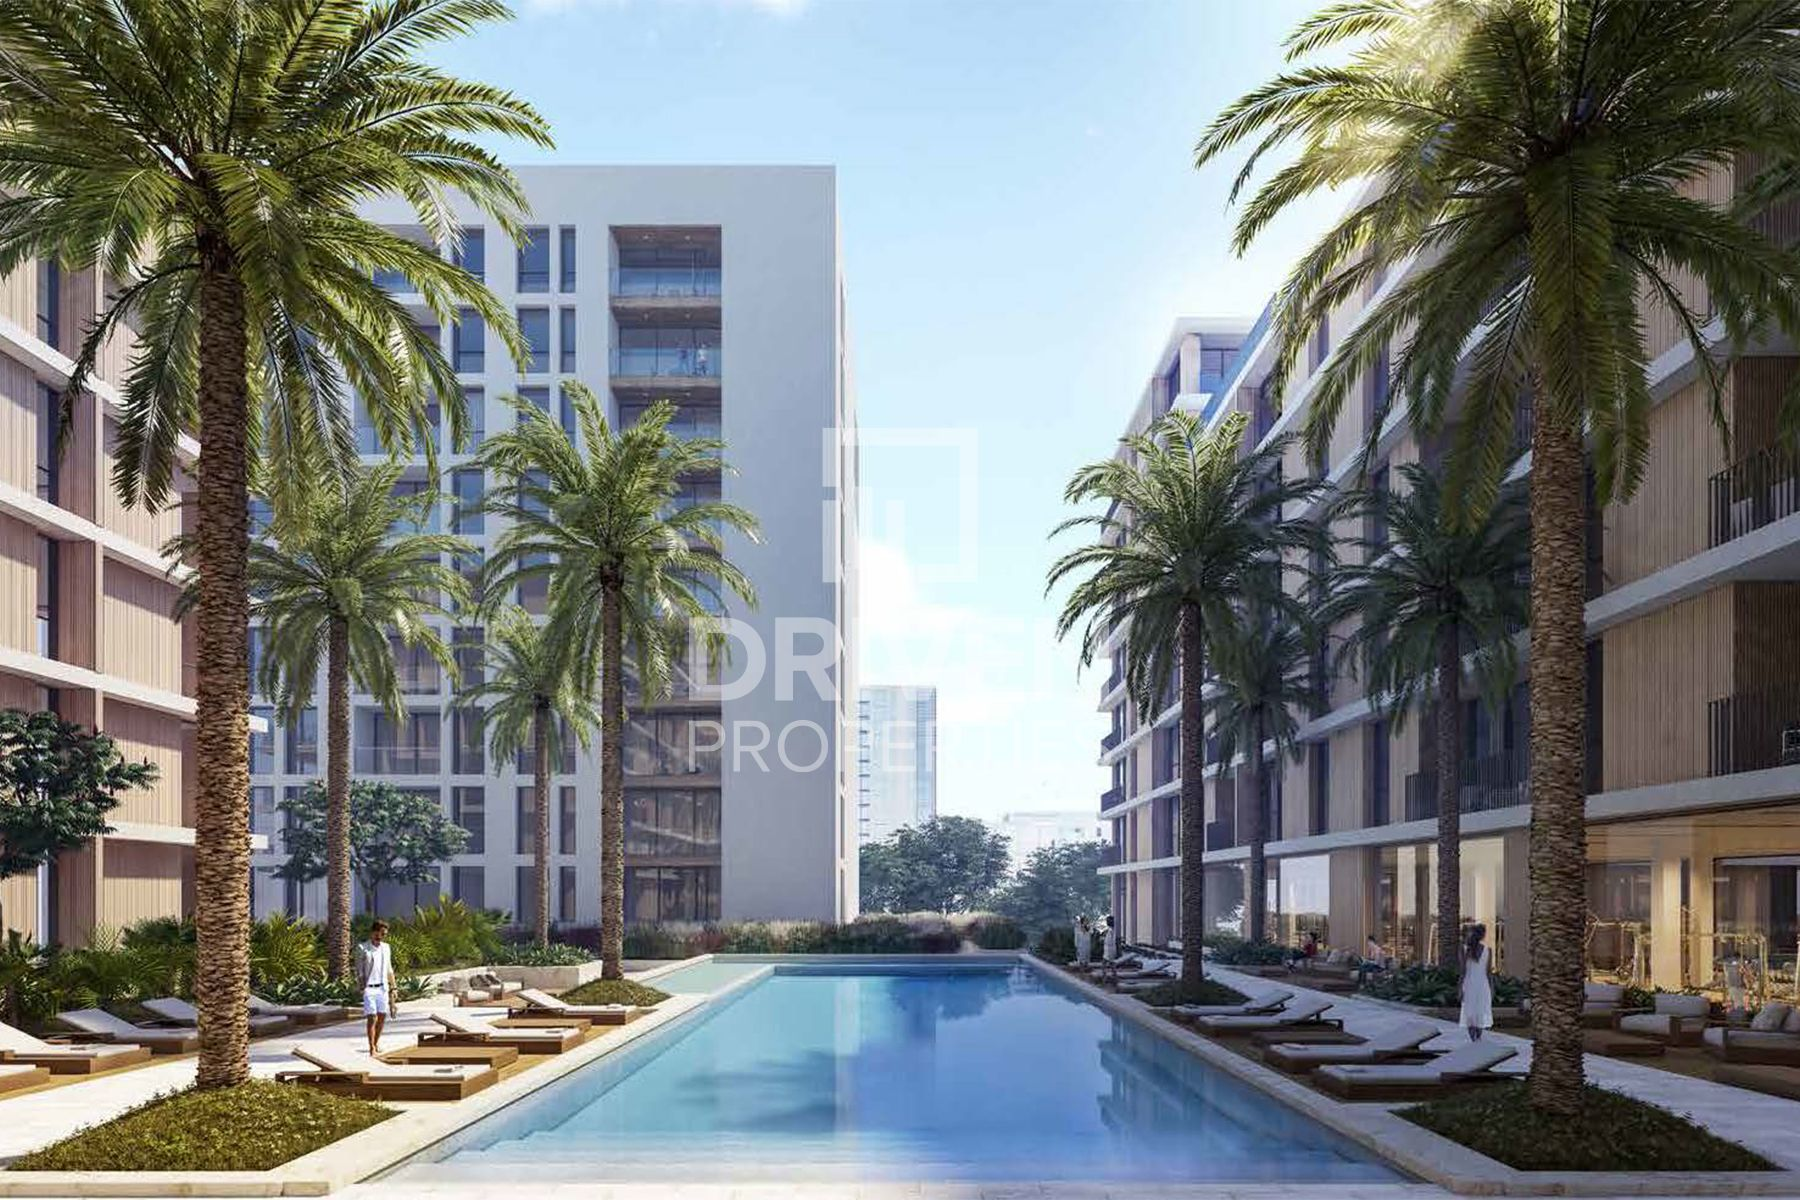 Apartment for Sale in Park Point - Dubai Hills Estate